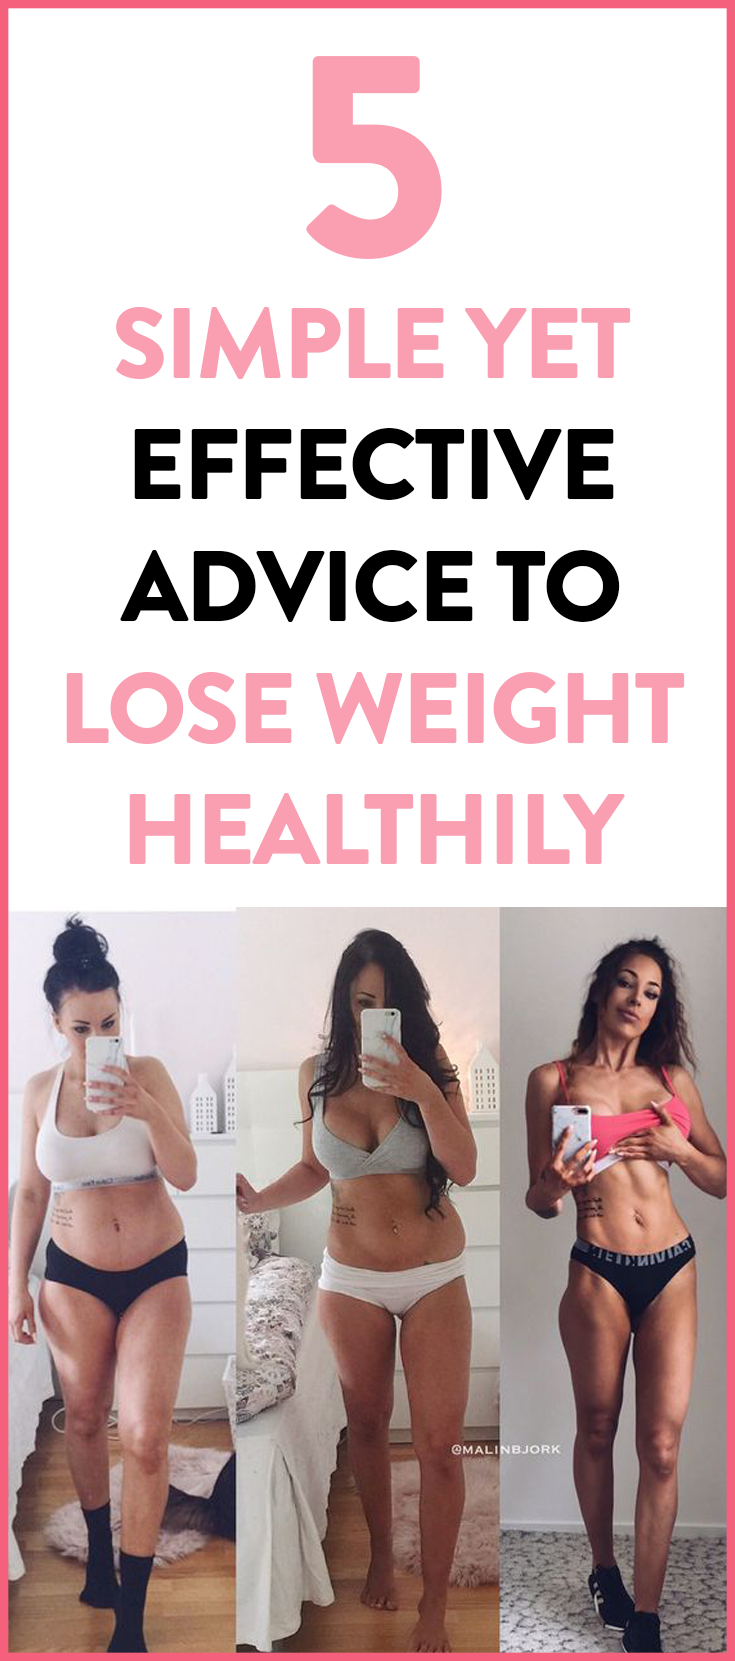 Fast weight loss health tips #weightlosstips <= | 5 ways to lose weight fast#weightlossjourney #fitn...